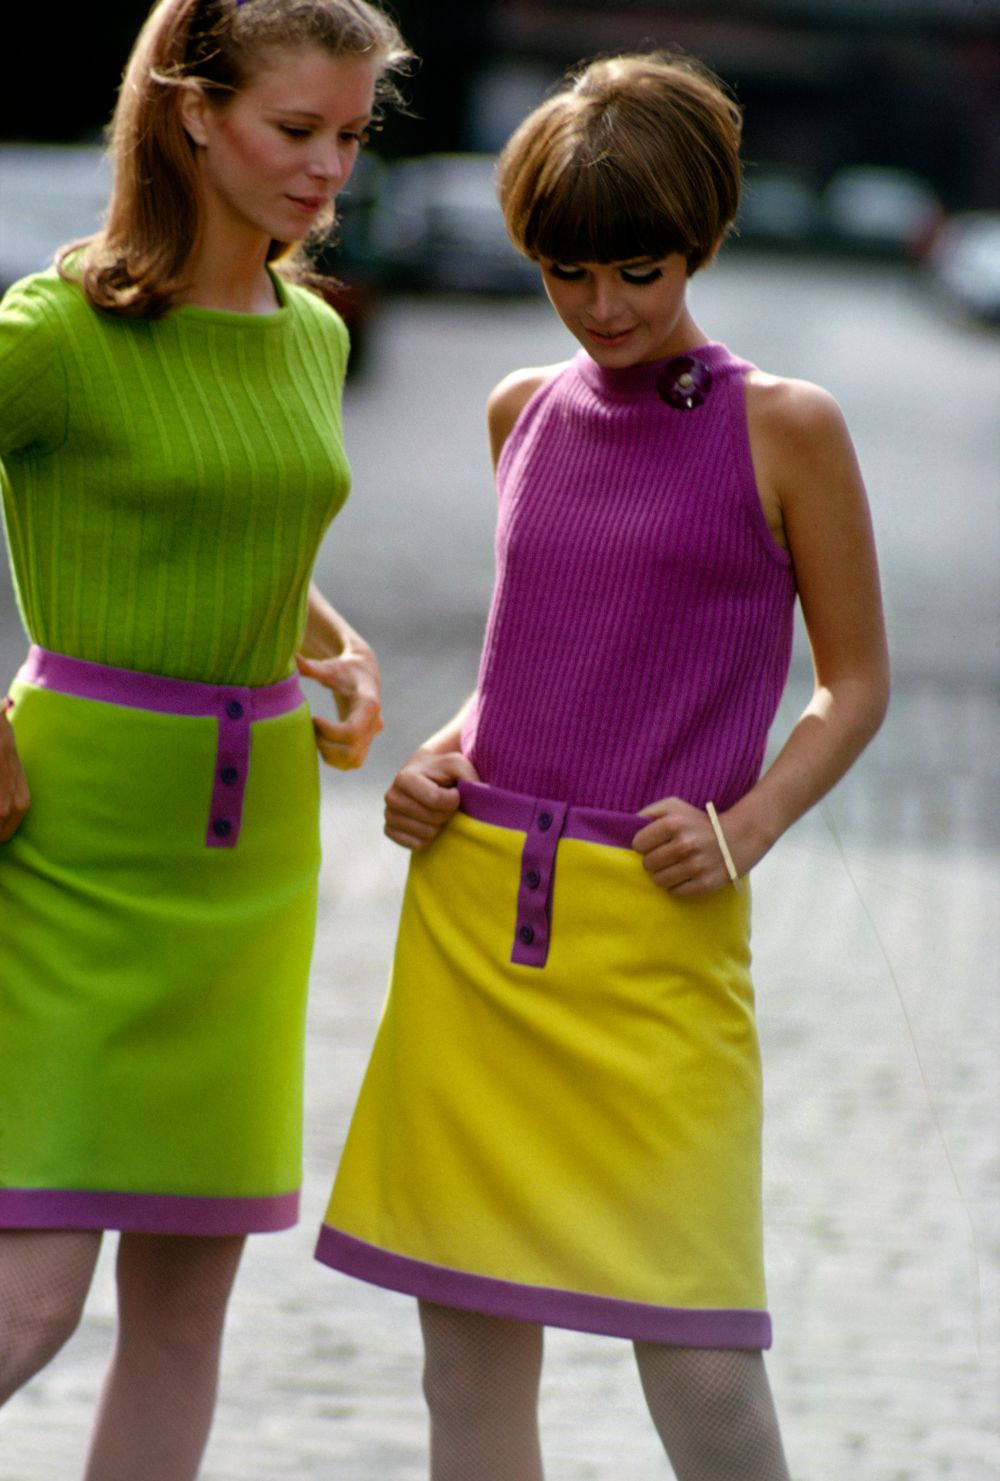 Style Mistakes: 18 Worst Fashion Trends From the 1960s